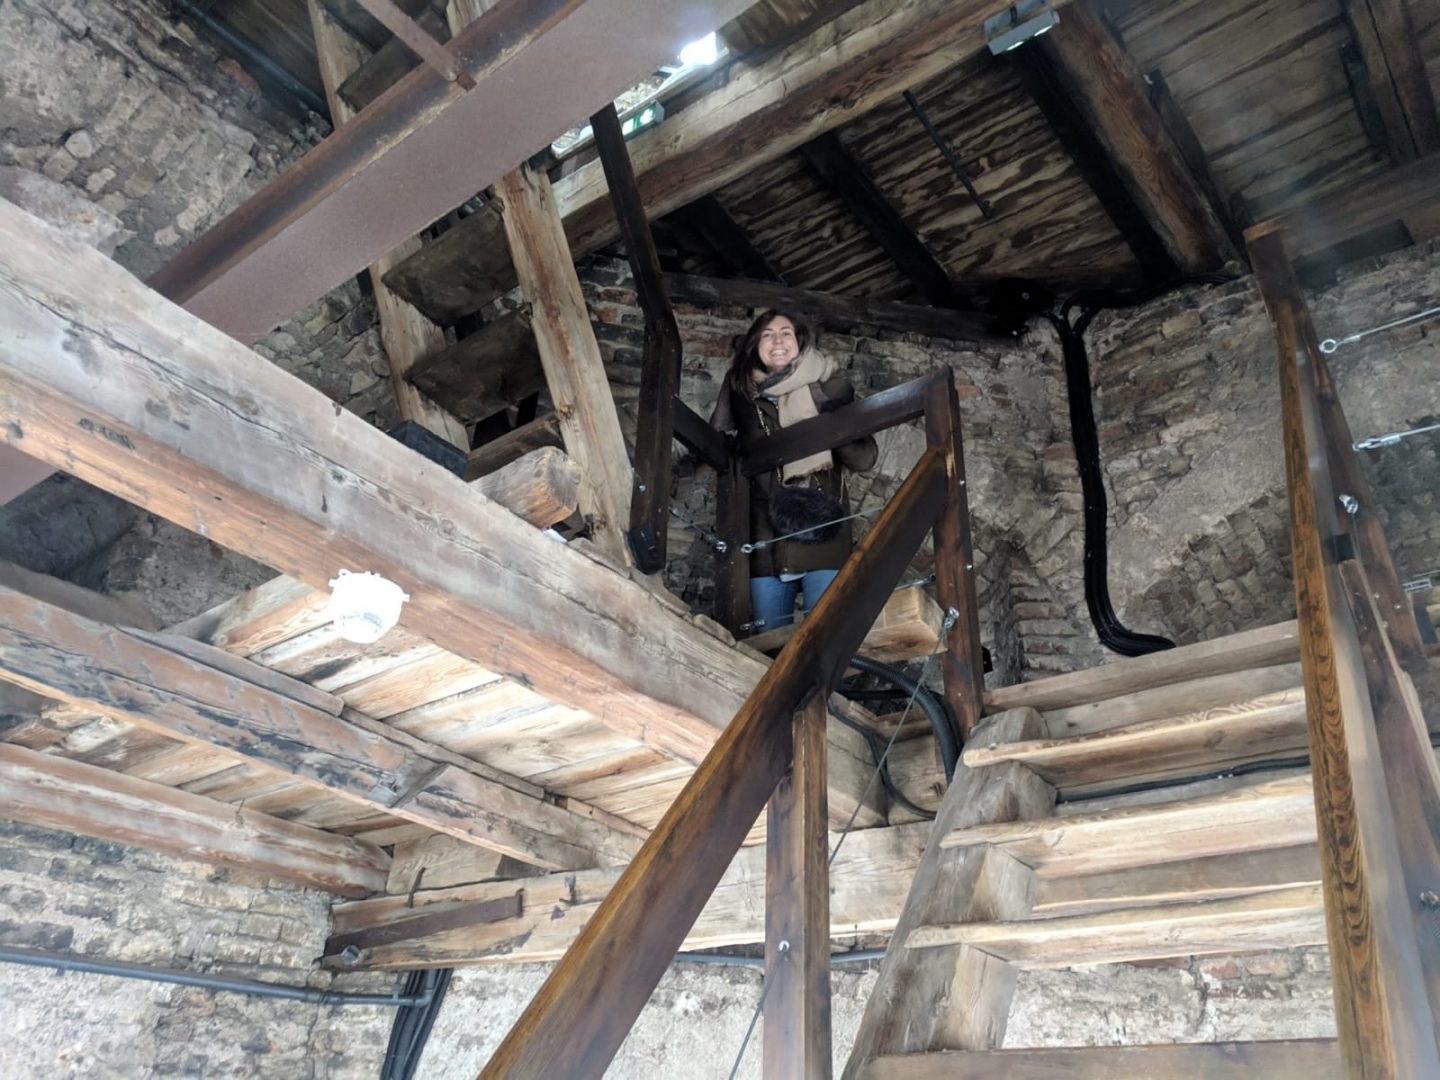 things to do in Vilnius in winter: Nell climbing the cathedral bell tower in Vilnius. She's looking down from half way up some wooden steps with a huge grin on her face